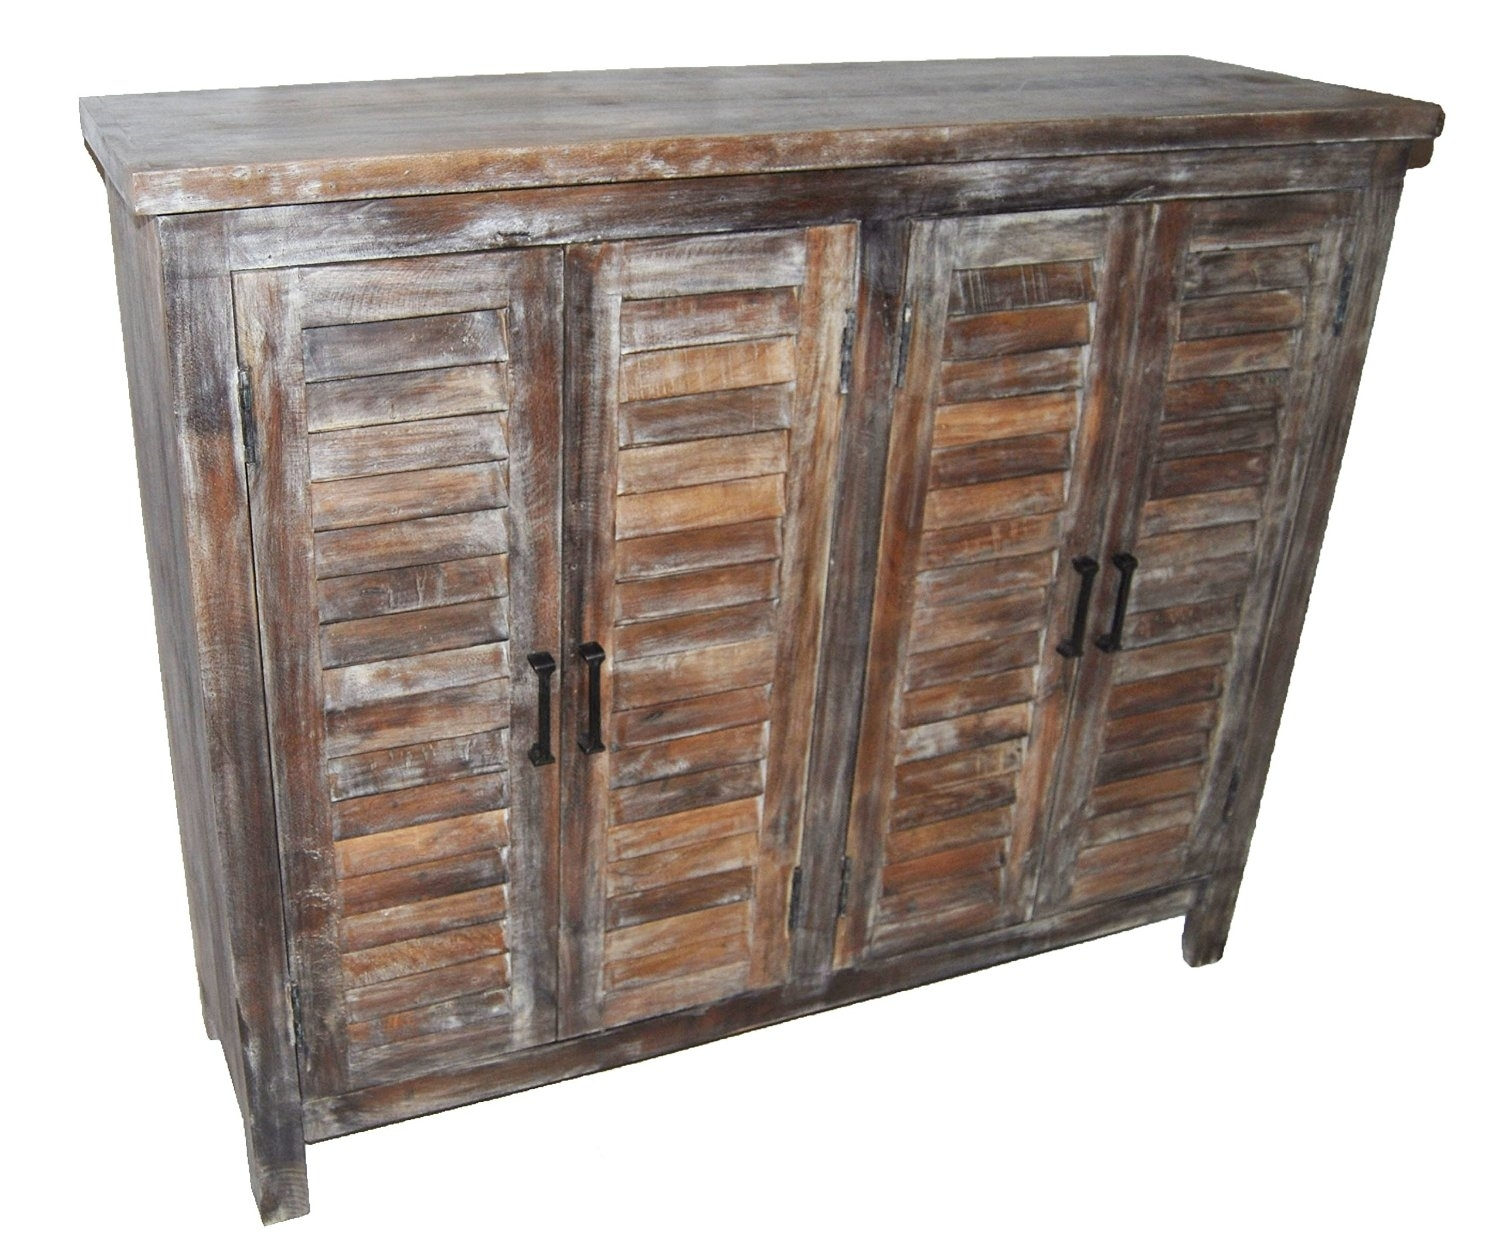 Cheap Reclaimed Sideboard, Find Reclaimed Sideboard Deals On Line At in Reclaimed Pine Turquoise 4-Door Sideboards (Image 6 of 30)